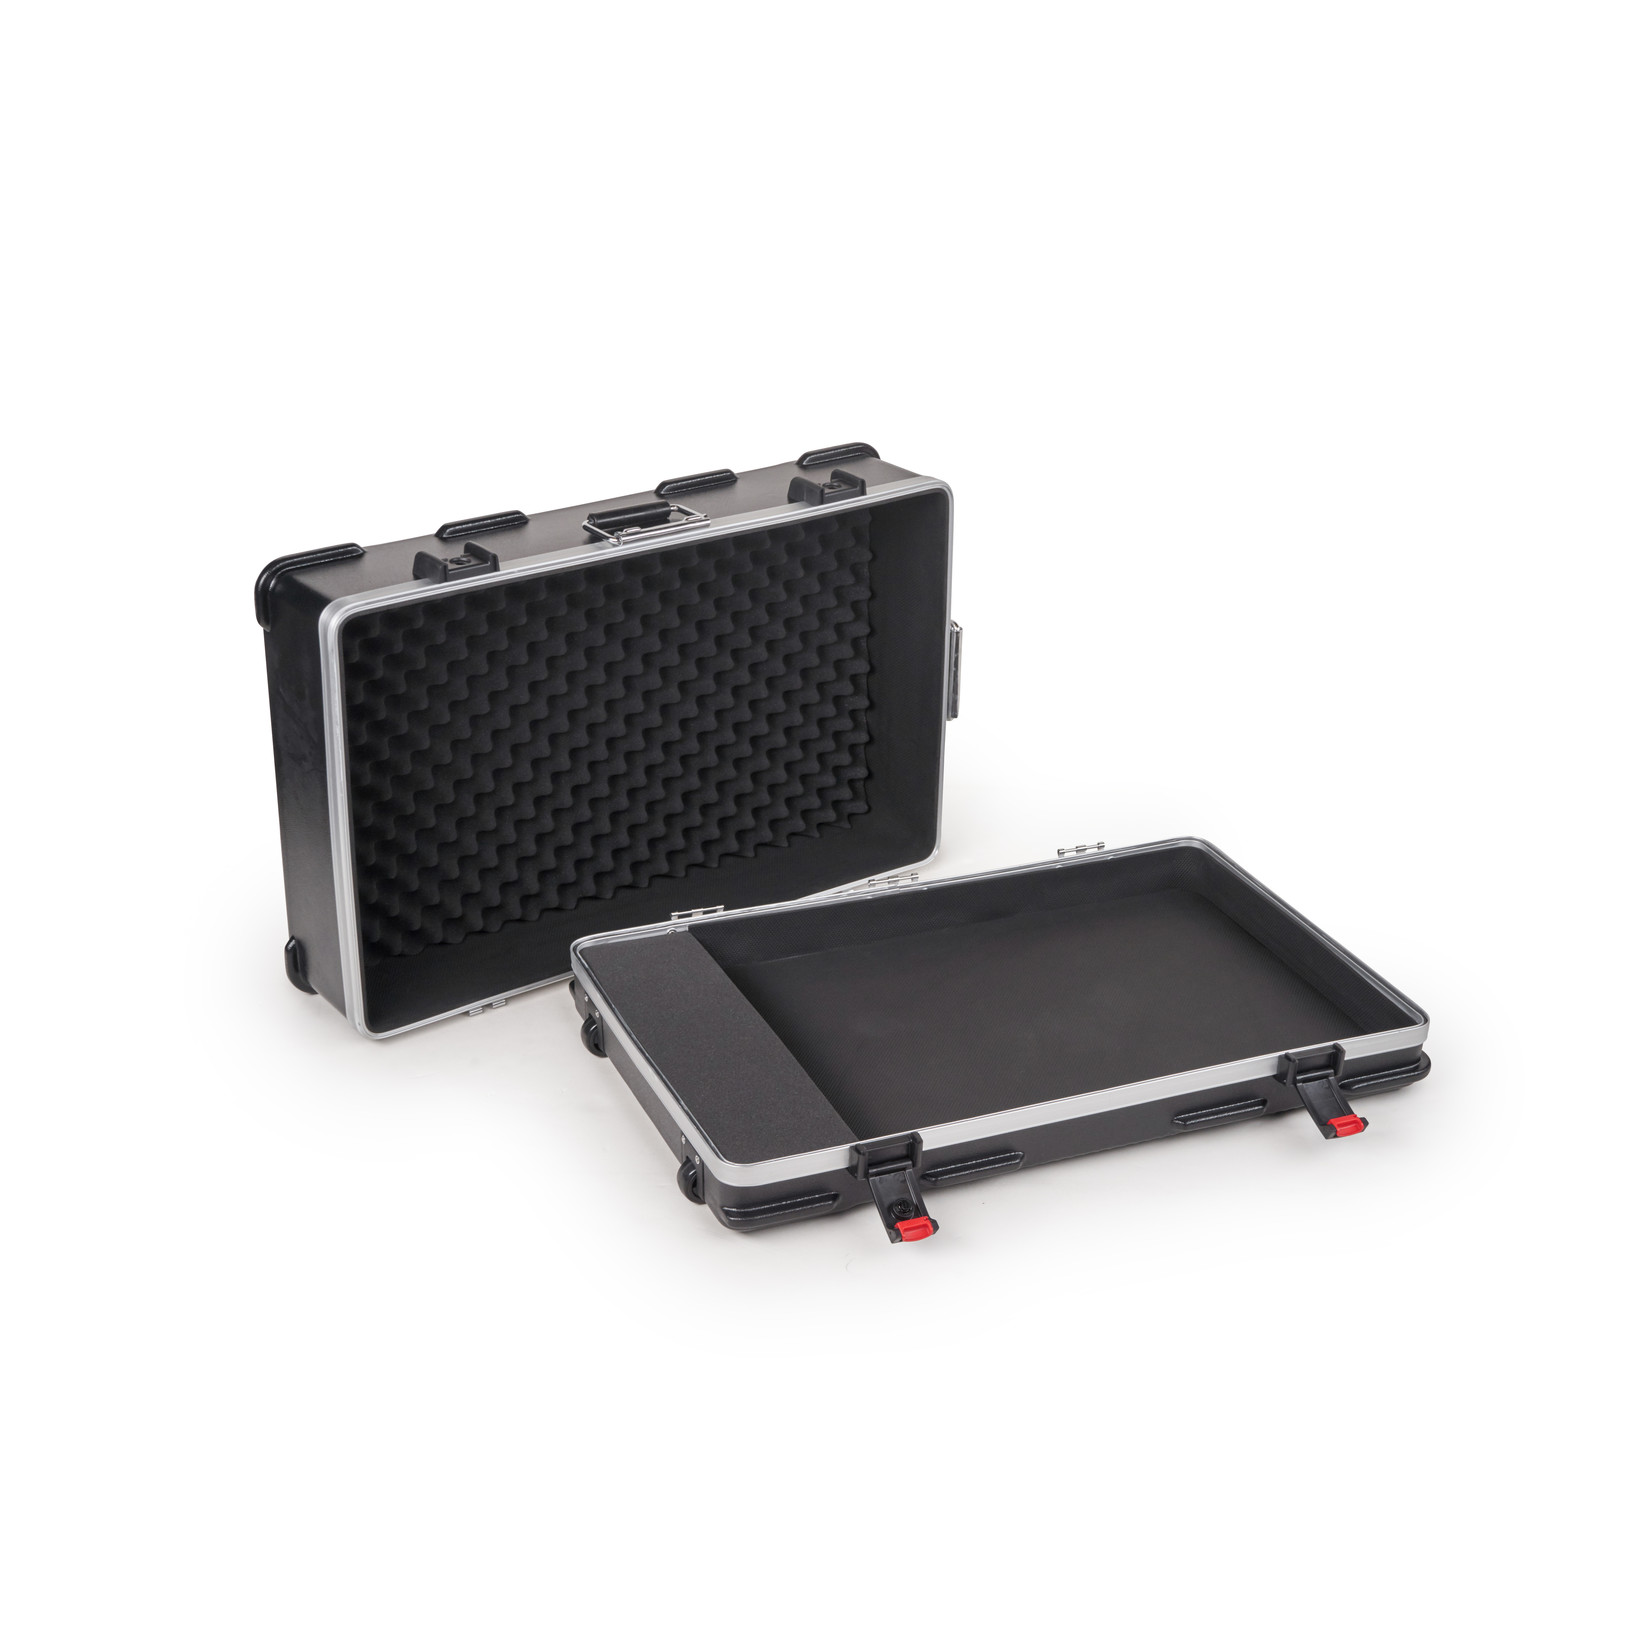 "Rockboard RockBoard CINQUE 5.2 (16.75"" x 24.5""), with Touring ABS Case (for 10-20 effects, depending on size)"